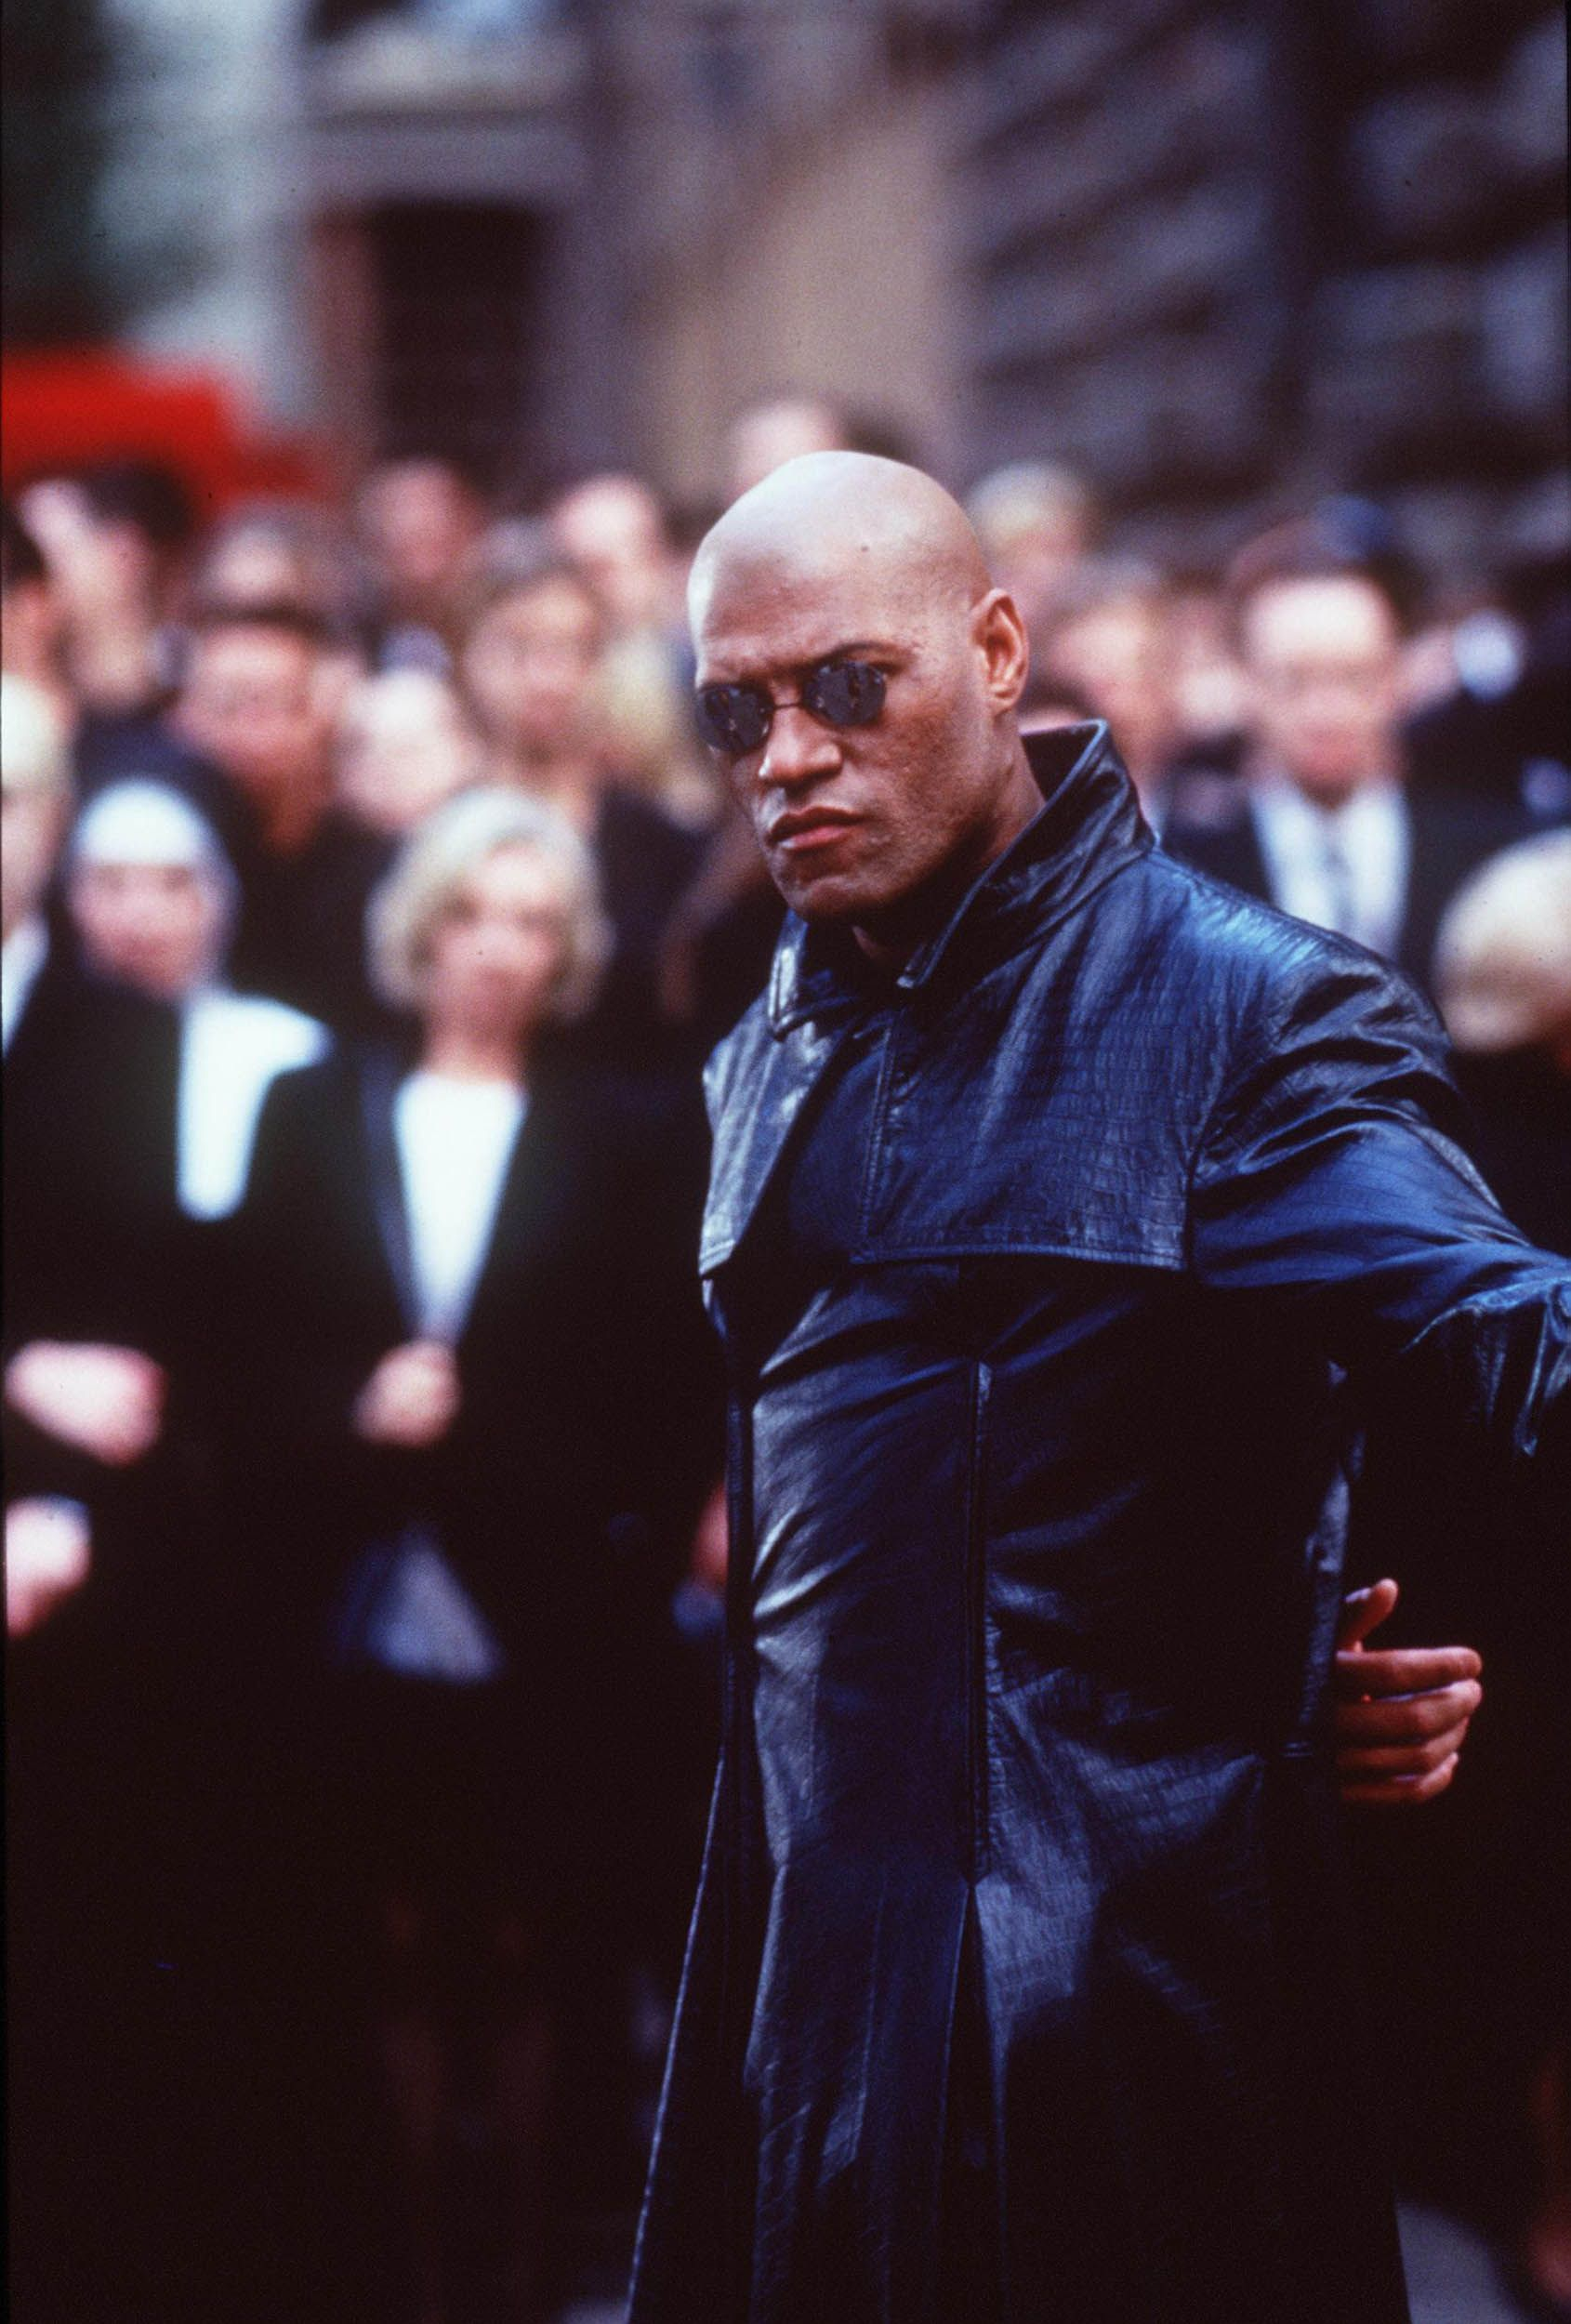 Laurence Fishburne in the 1999 film The Matrix .